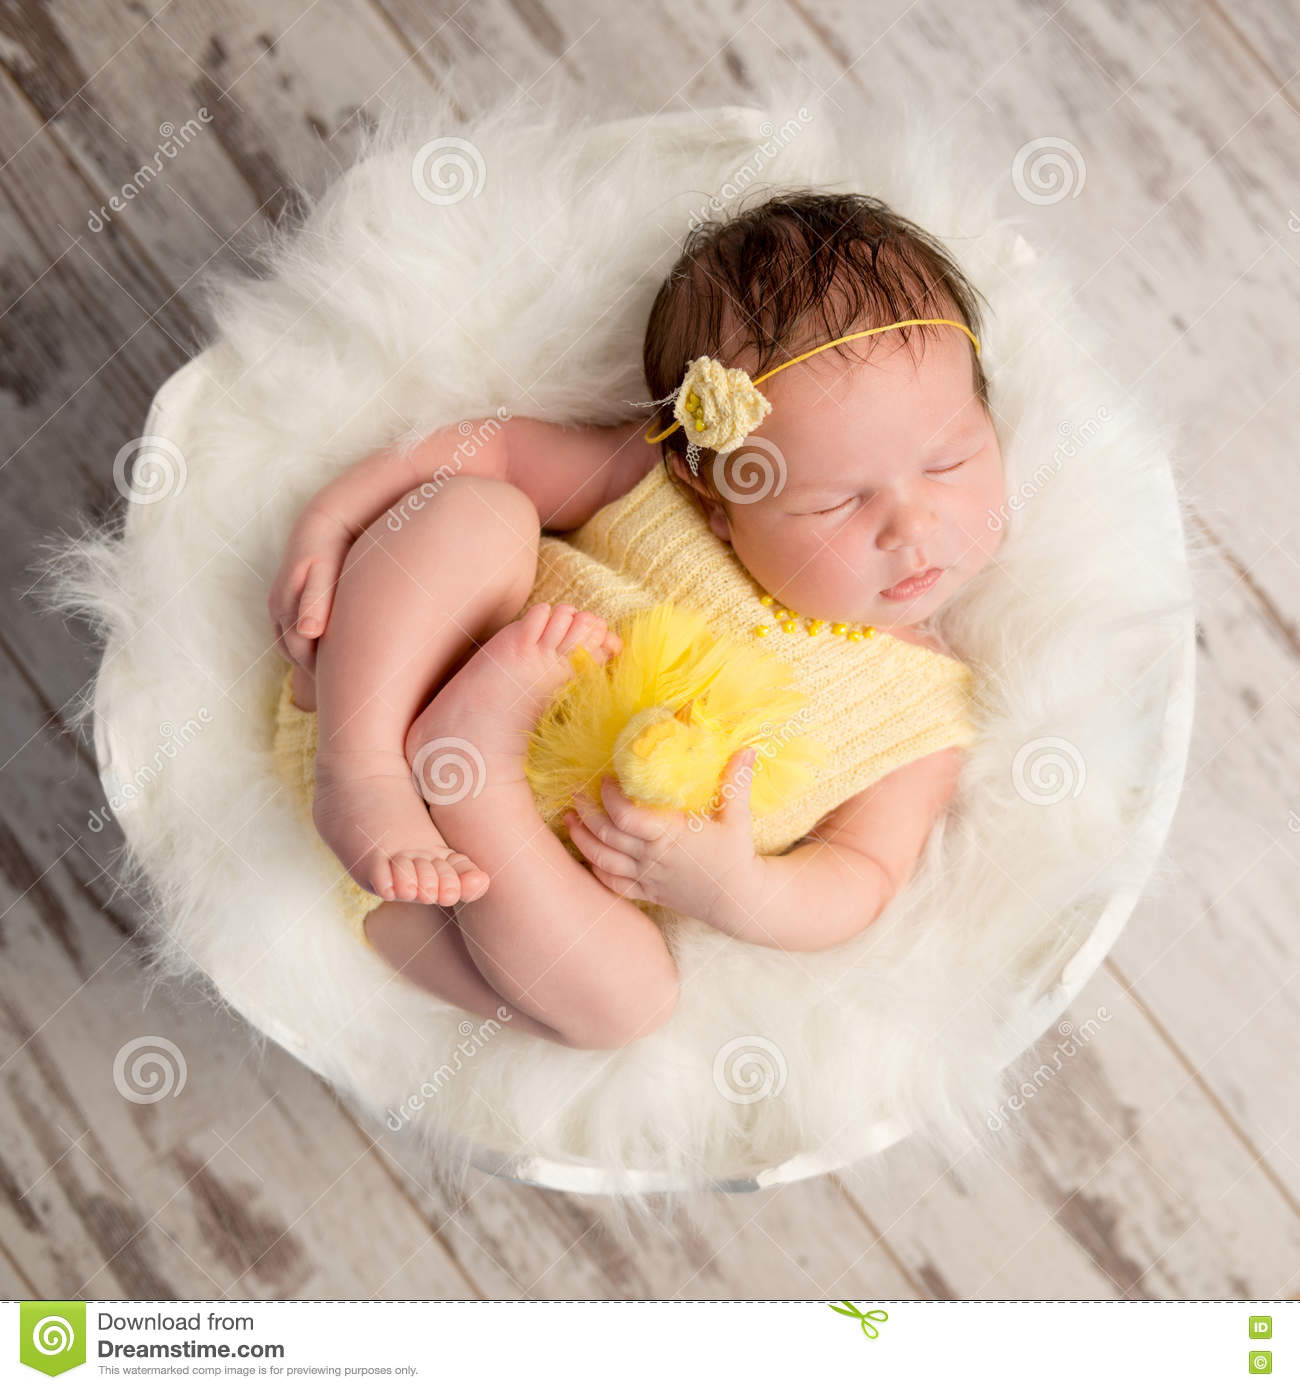 52cd3aa13 Funny Sleeping Baby In Yellow Romper On Round Cot Stock Photo ...